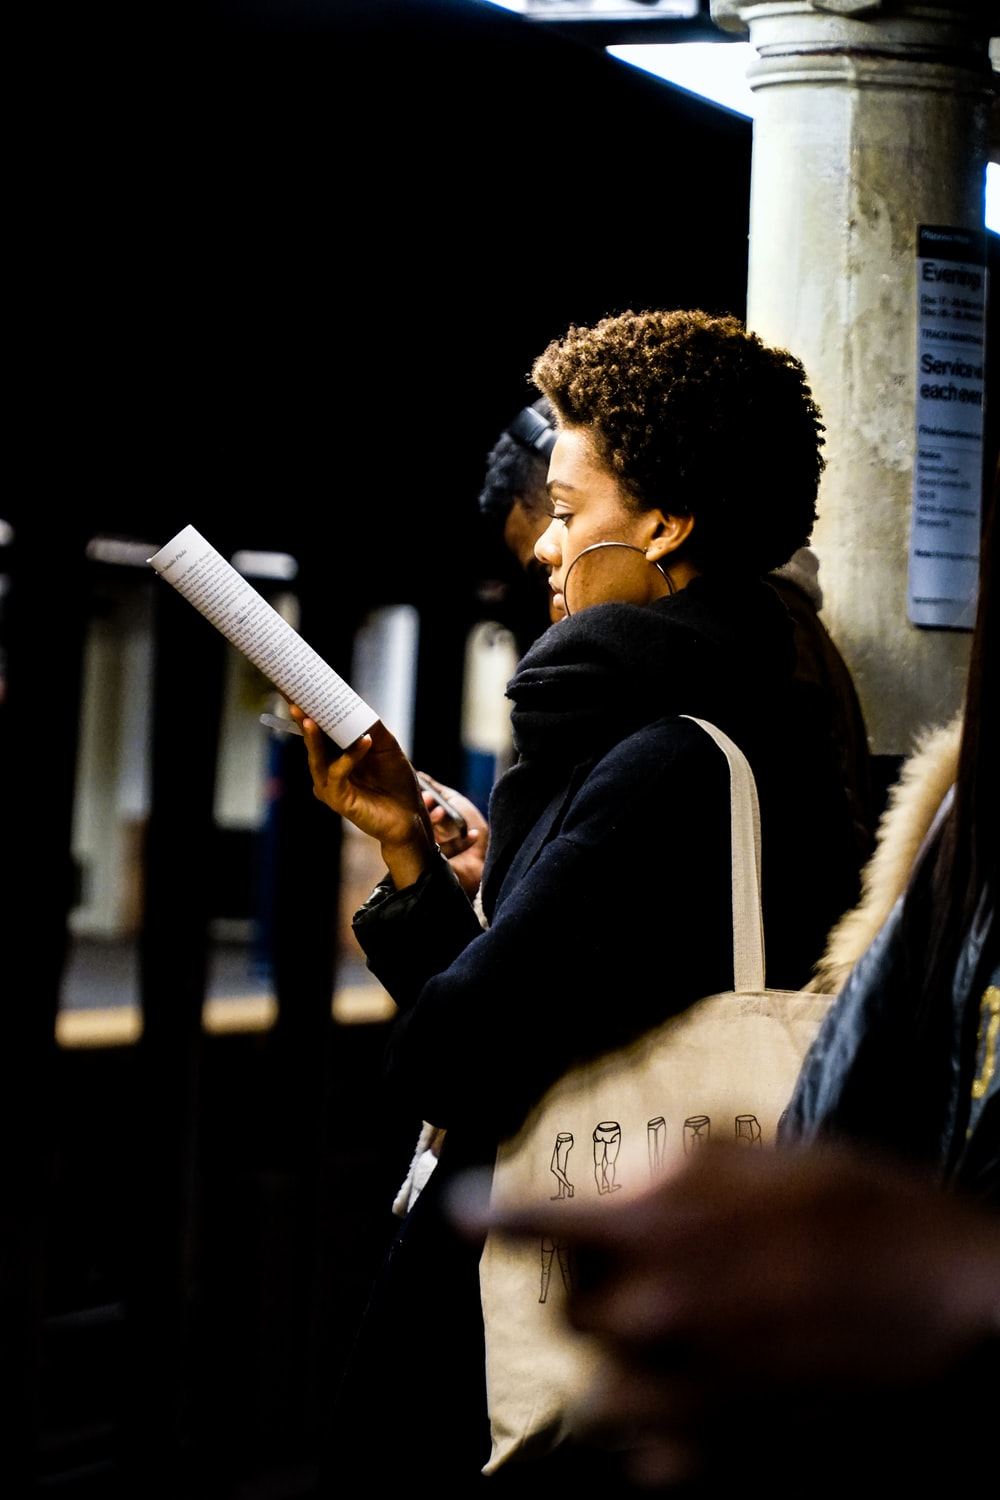 woman reading book while waiting in a train station